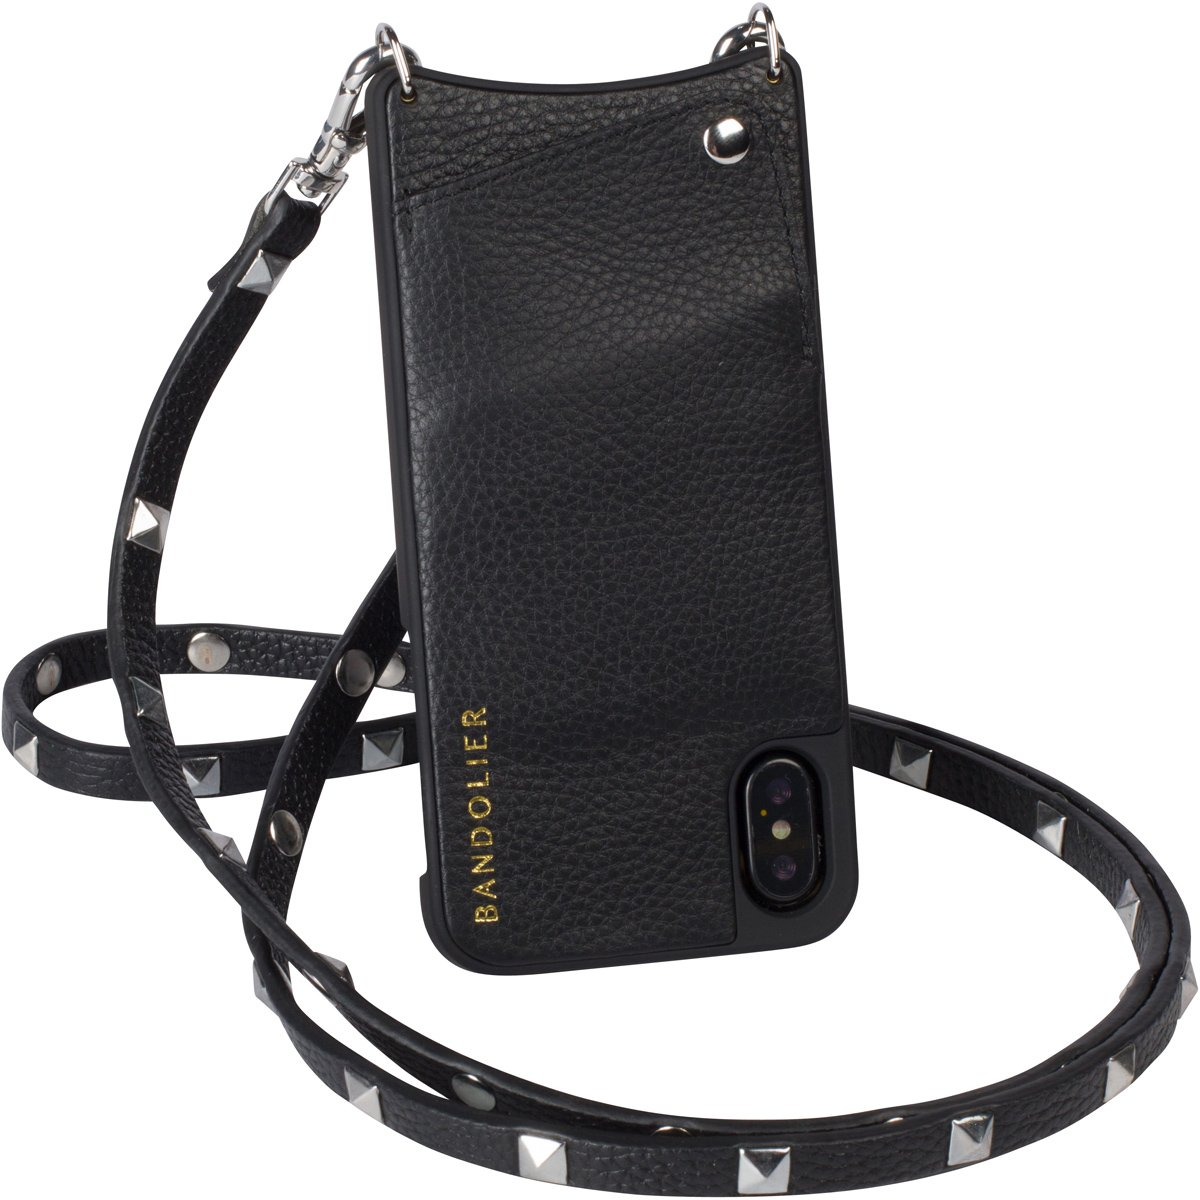 Bandolier [Sarah] Crossbody Phone Case and Wallet - Compatible with iPhone X & XS (Black/Silver)